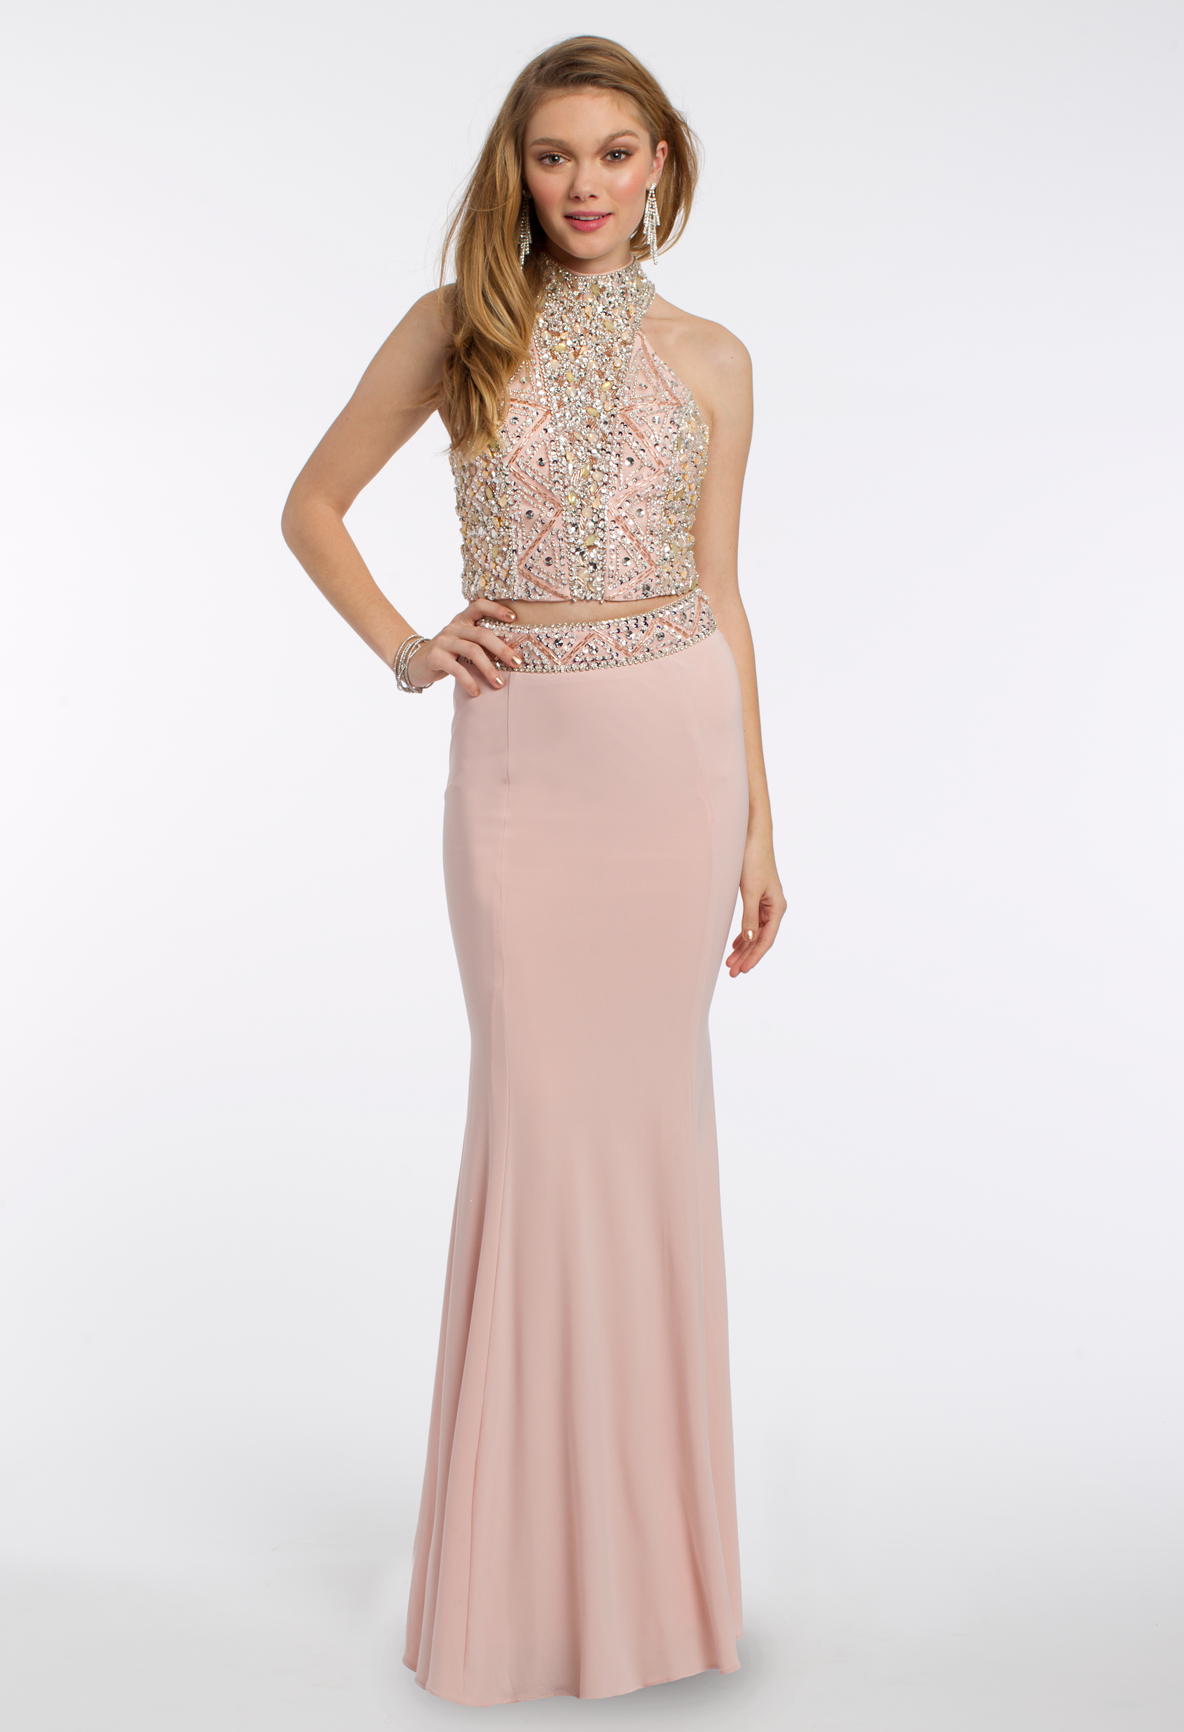 Look super suave as you strut into prom wearing this evening gown ...